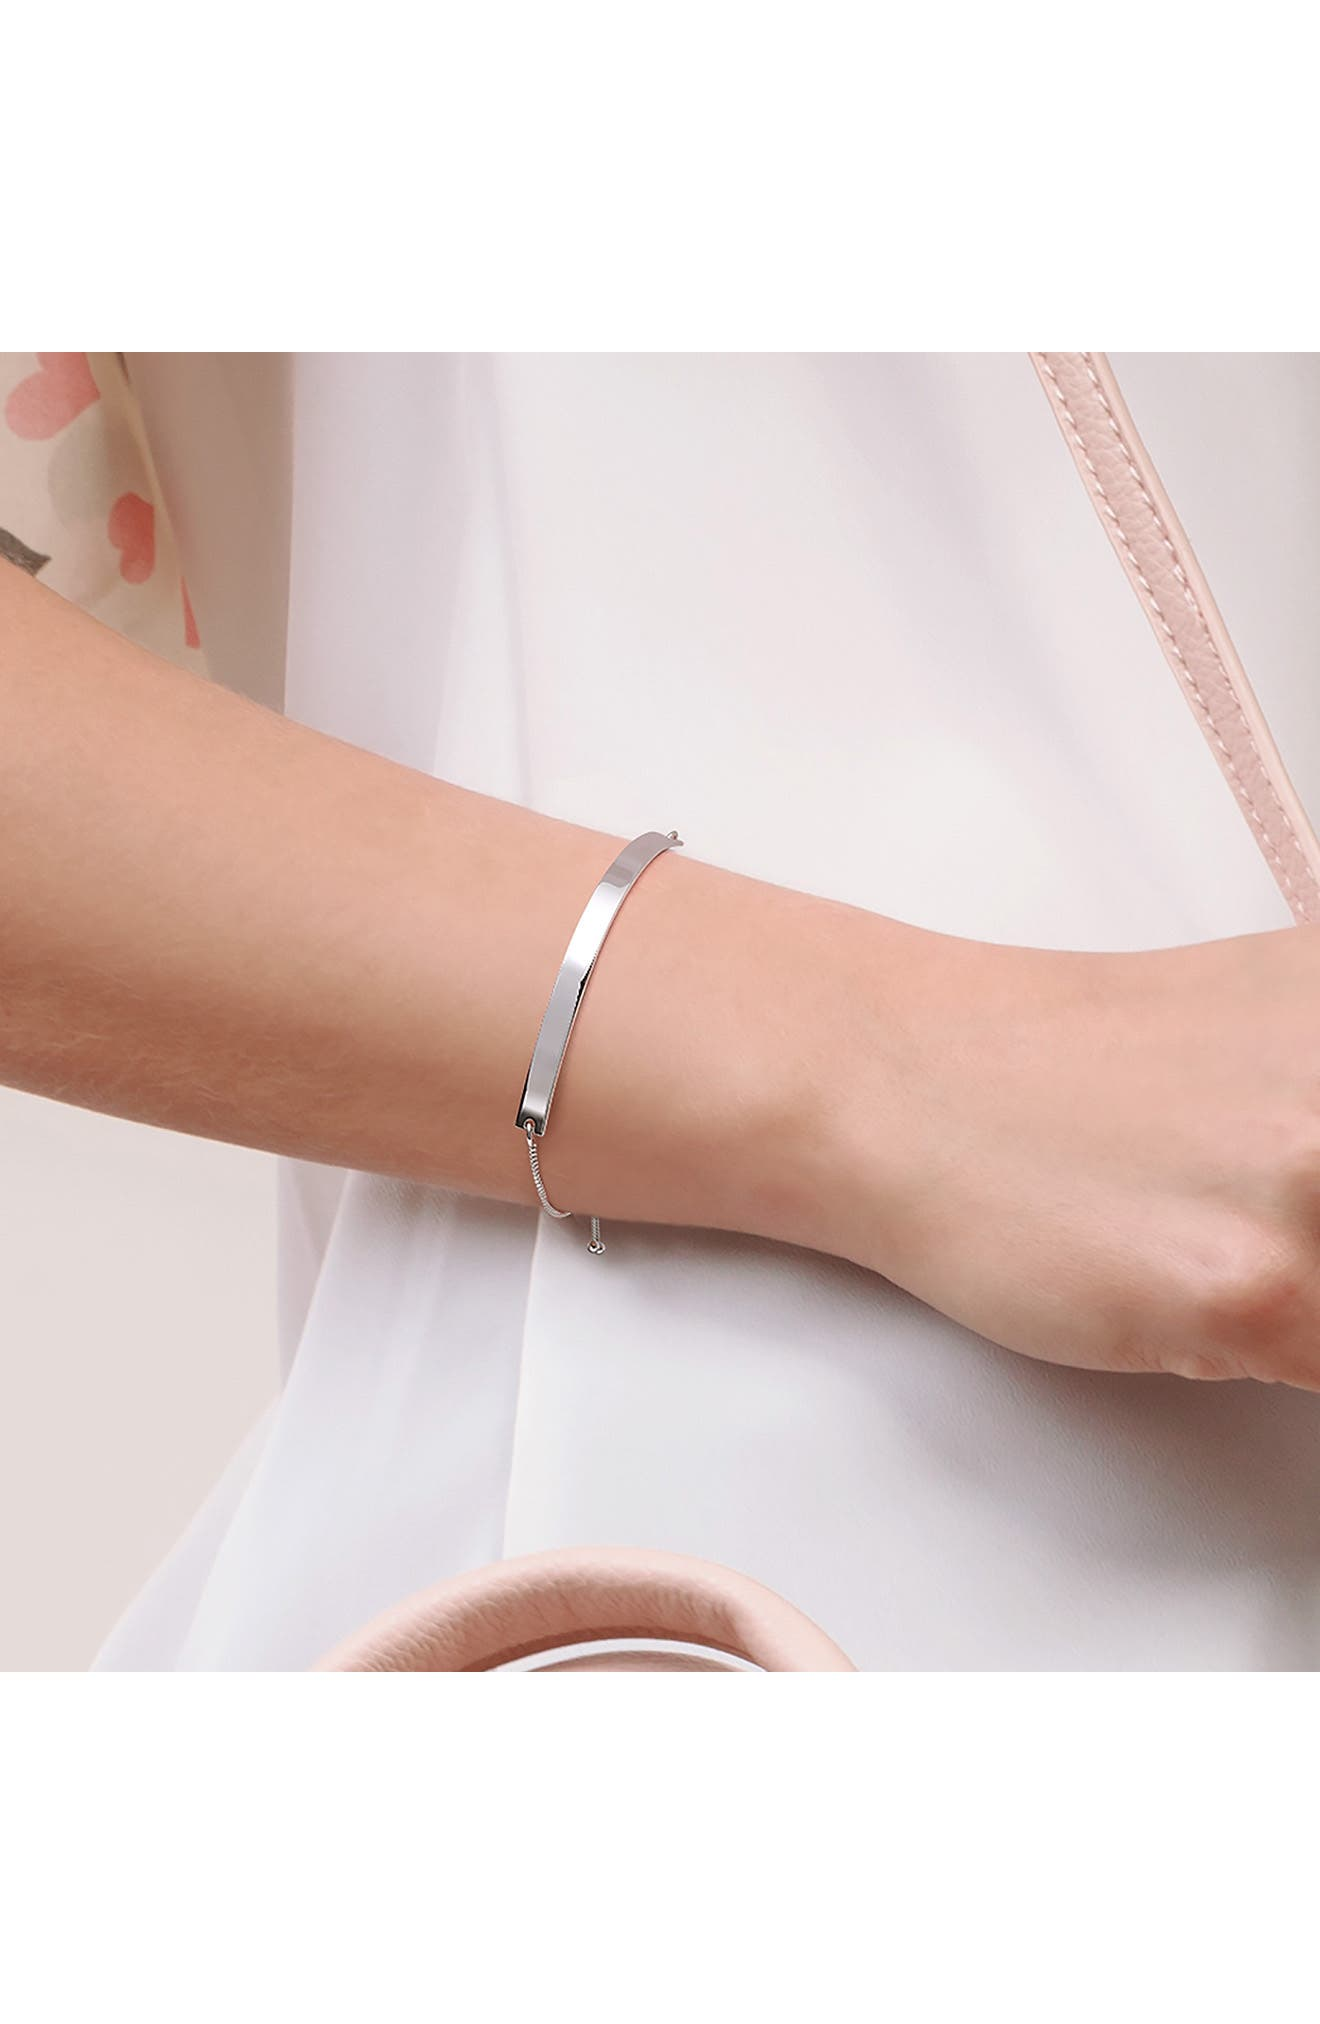 Image of Bling Jewelry Sterling Silver ID Band Bolo Bracelet